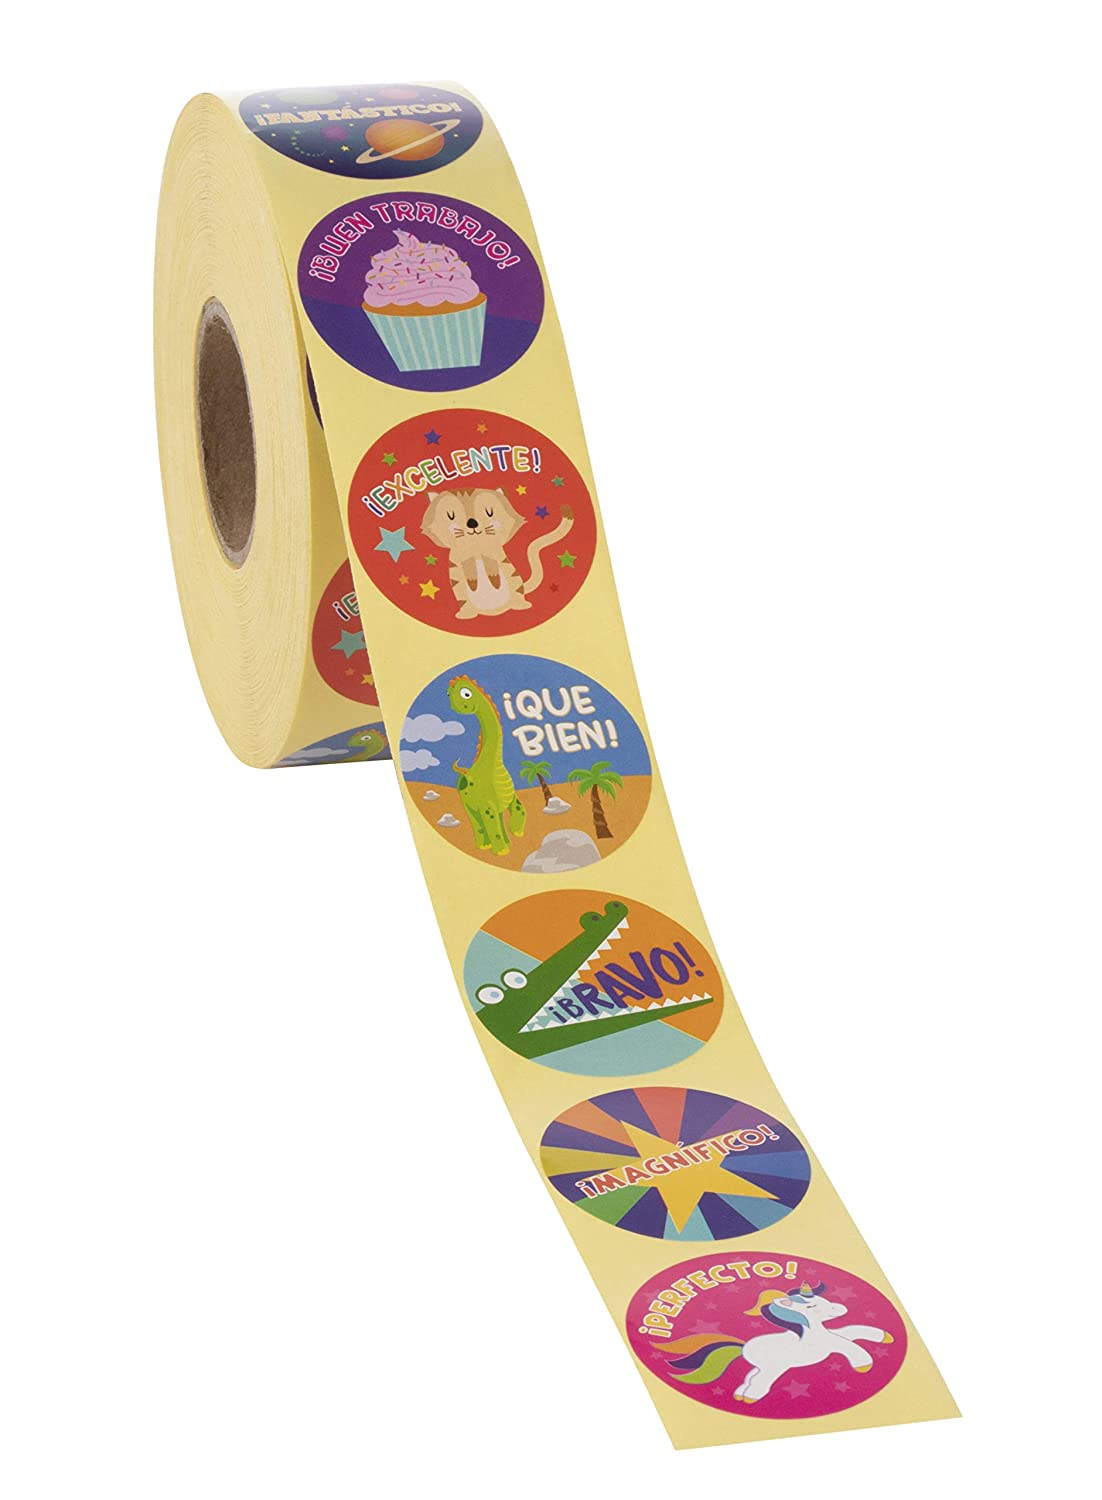 Motivational Stickers with Cute Animals for Students Classroom Use 1.5 inches Diameter Teachers 1000-Count Spanish Encouragement Sticker Roll for Kids Reward Stickers 8 Designs